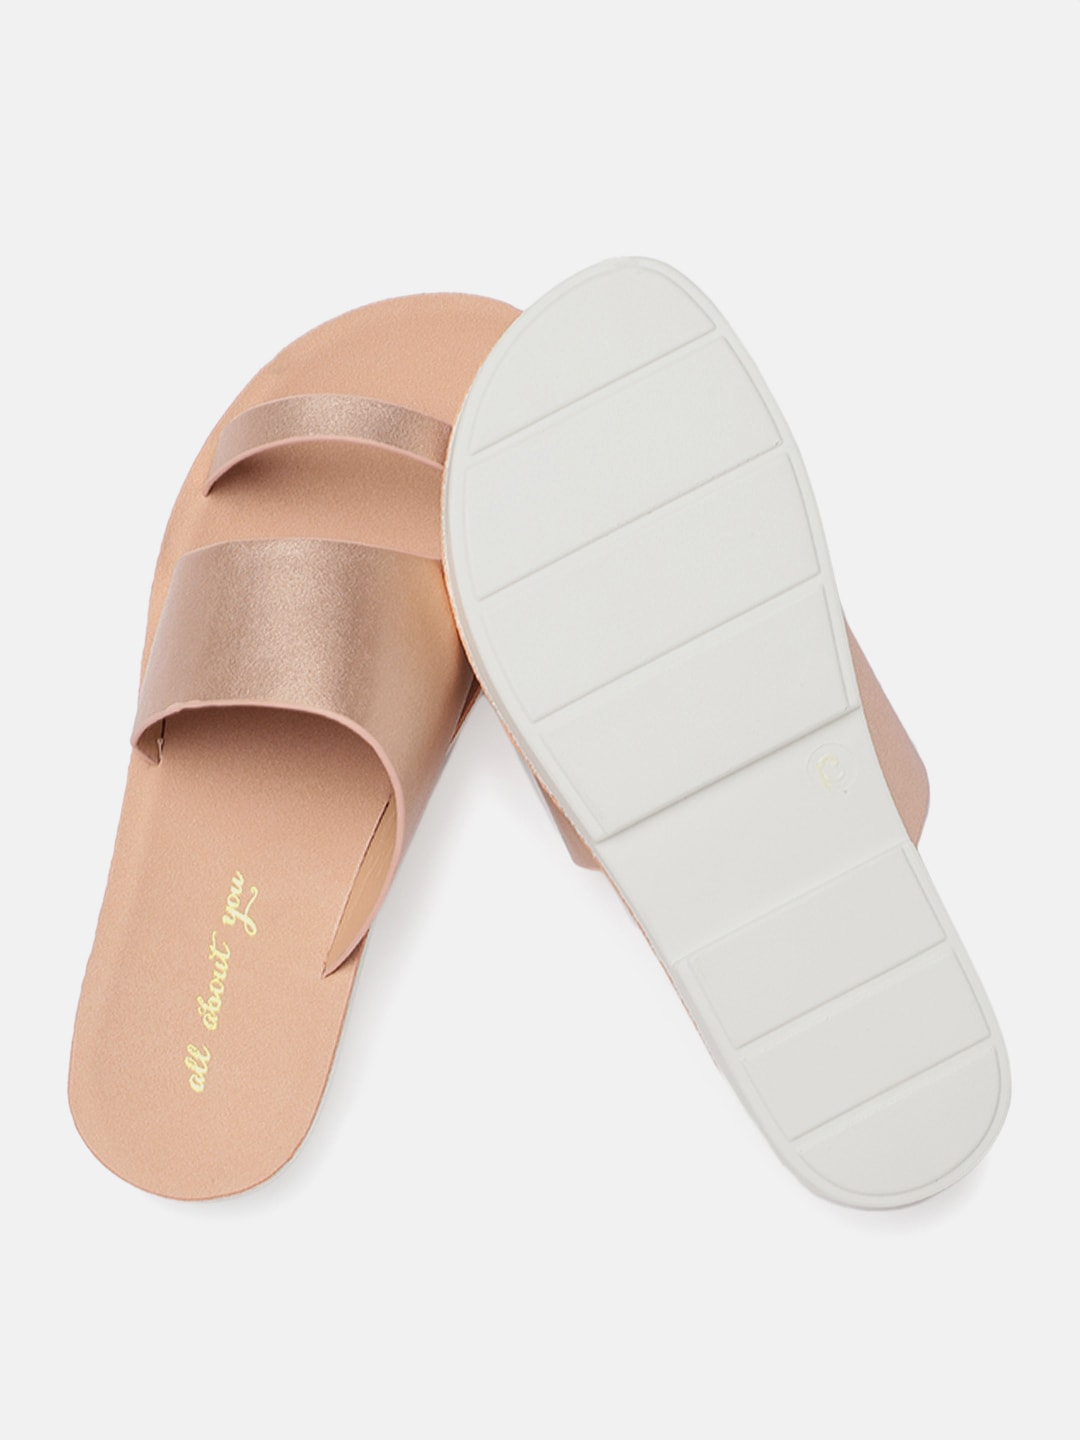 all about you Women Rose Gold-Toned Solid Open Toe Flats